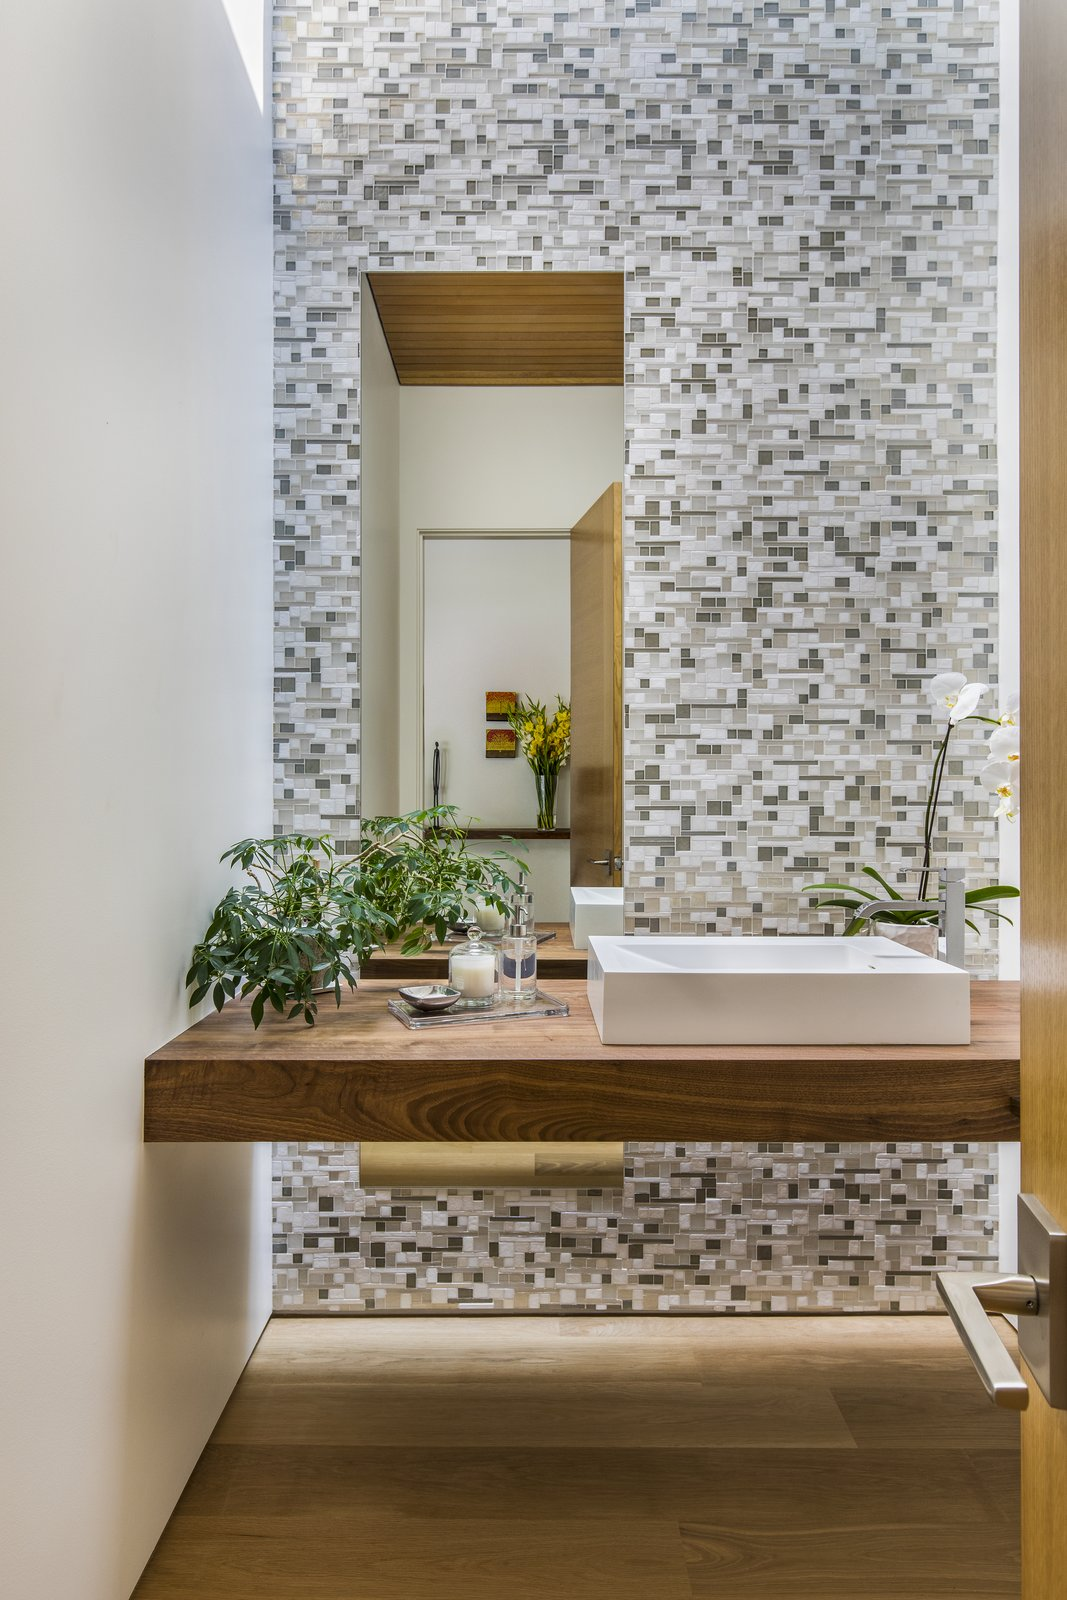 Bath Room, Mosaic Tile Wall, Light Hardwood Floor, Vessel Sink, Wood Counter, and Recessed Lighting  Wildwood by Giulietti / Schouten AIA Architects